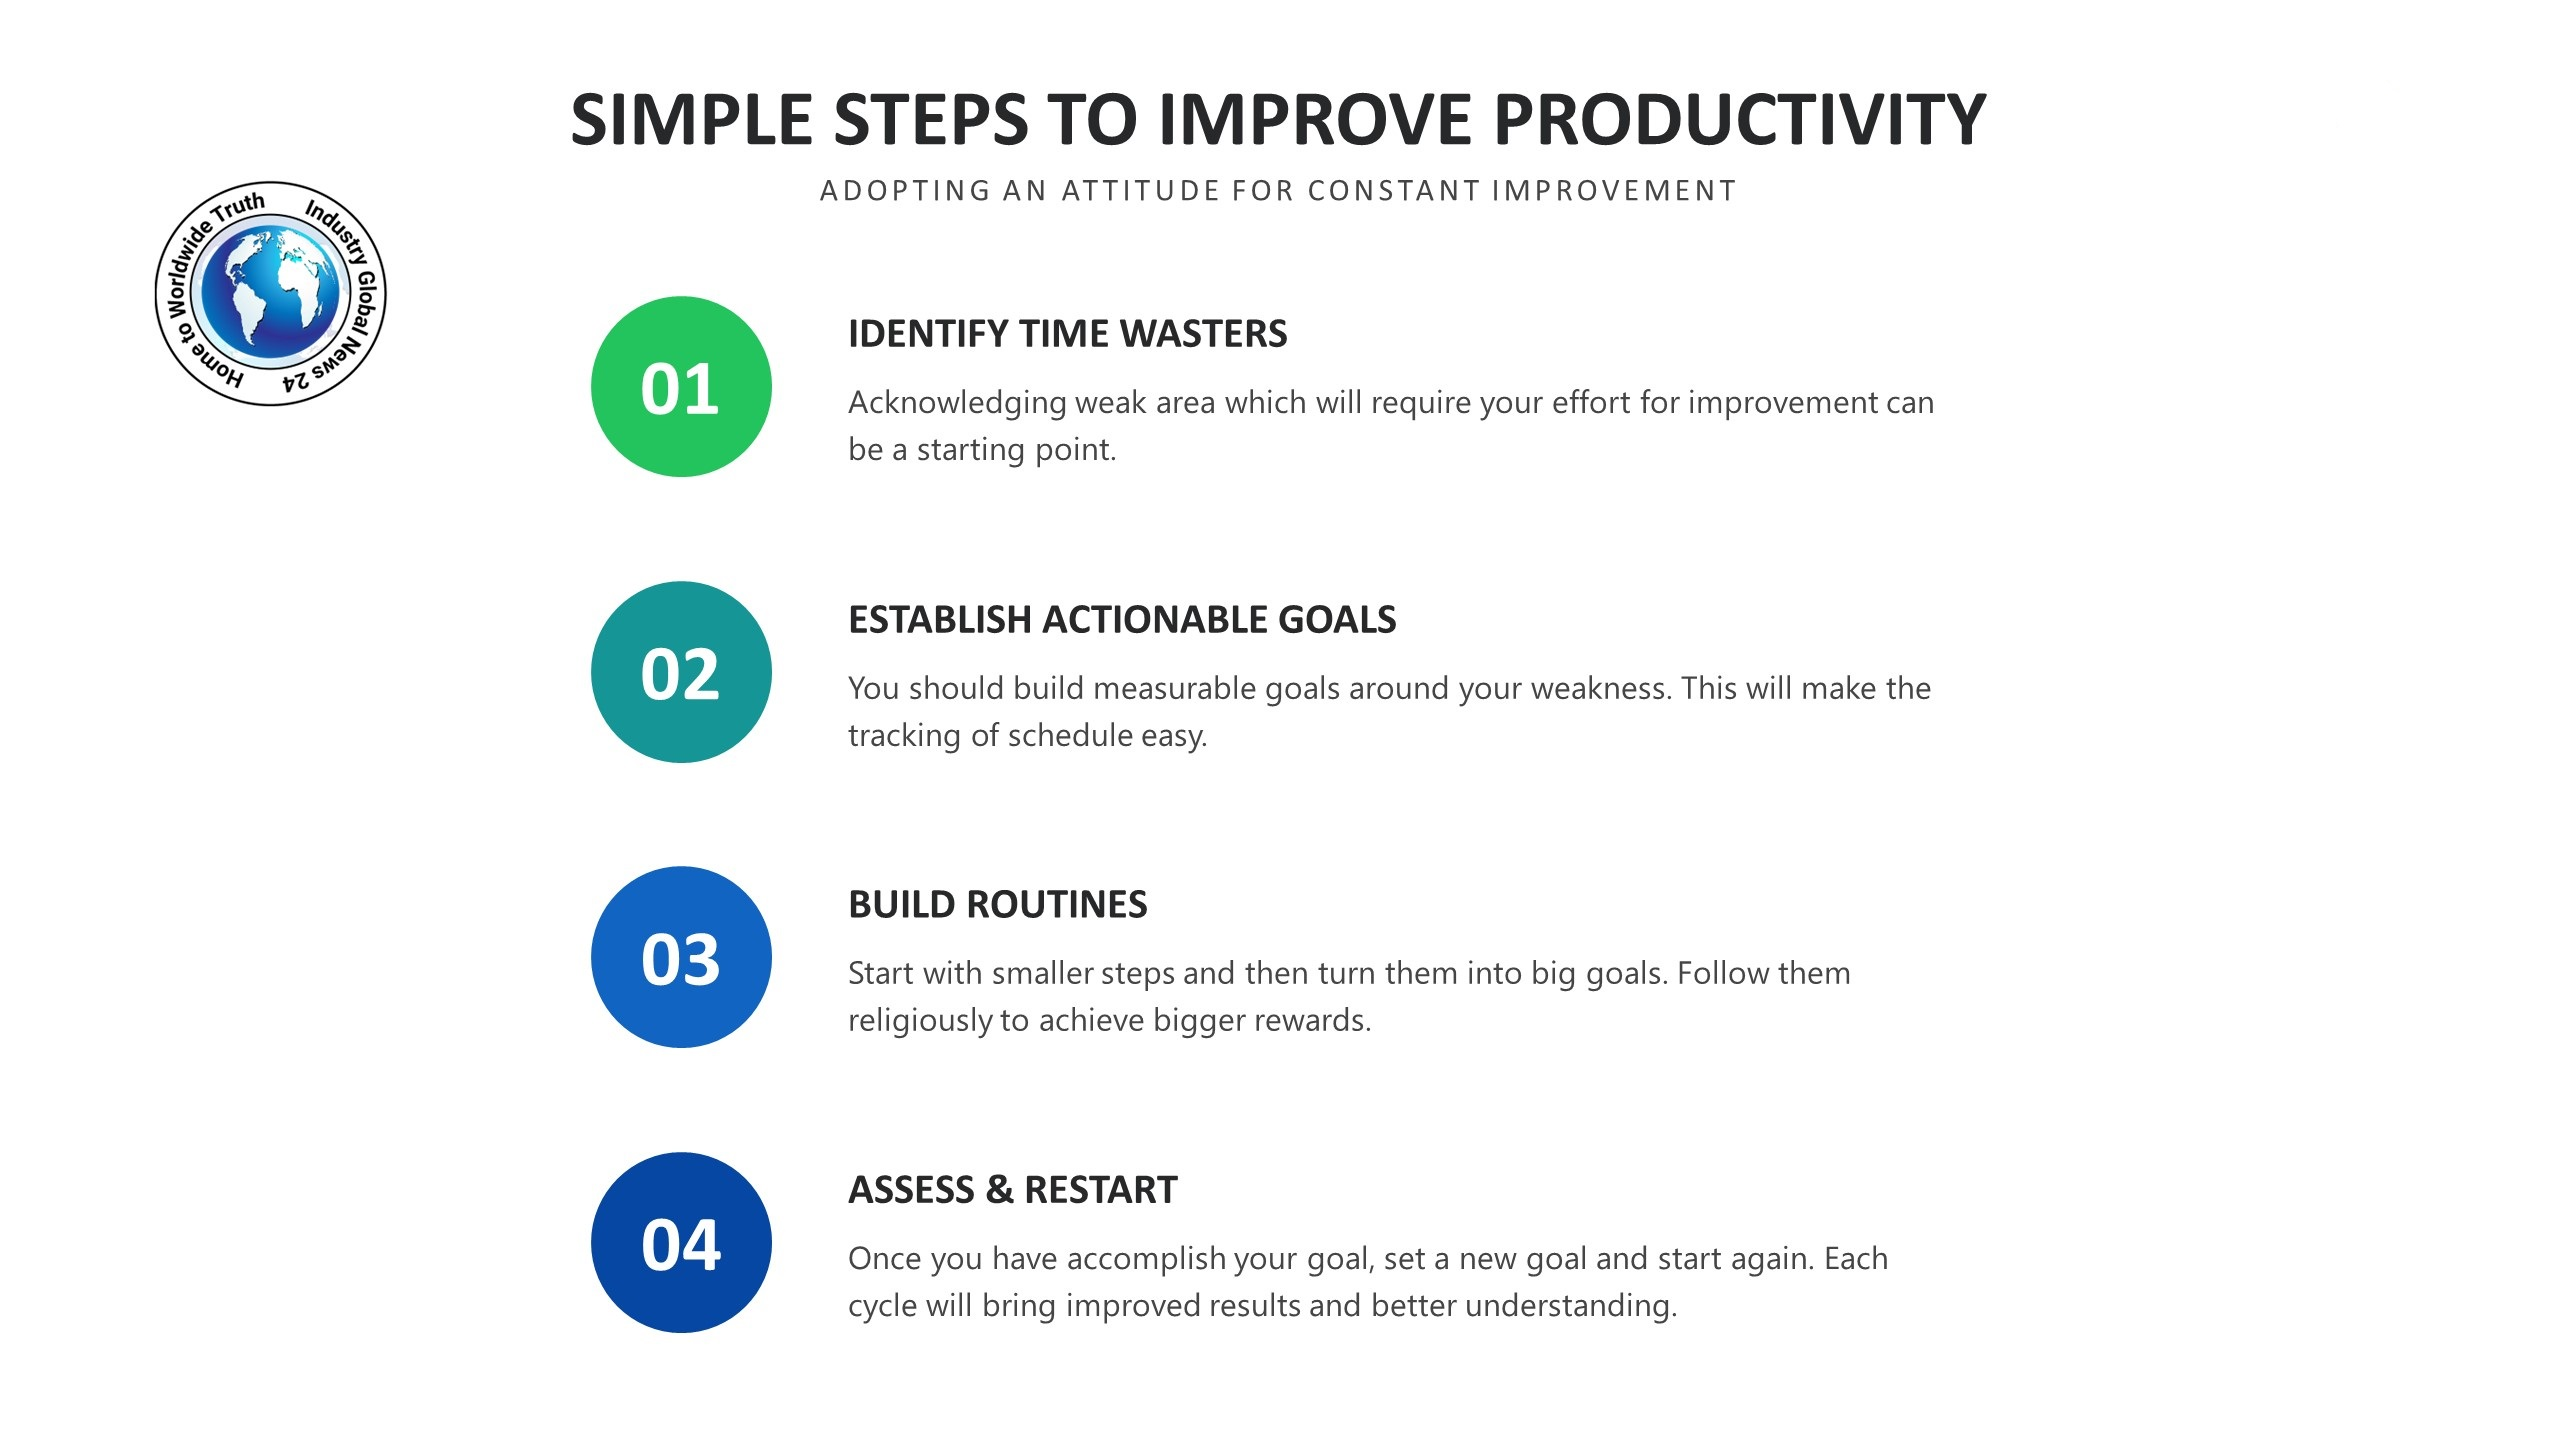 SIMPLE STEPS TO IMPROVE PRODUCTIVITY